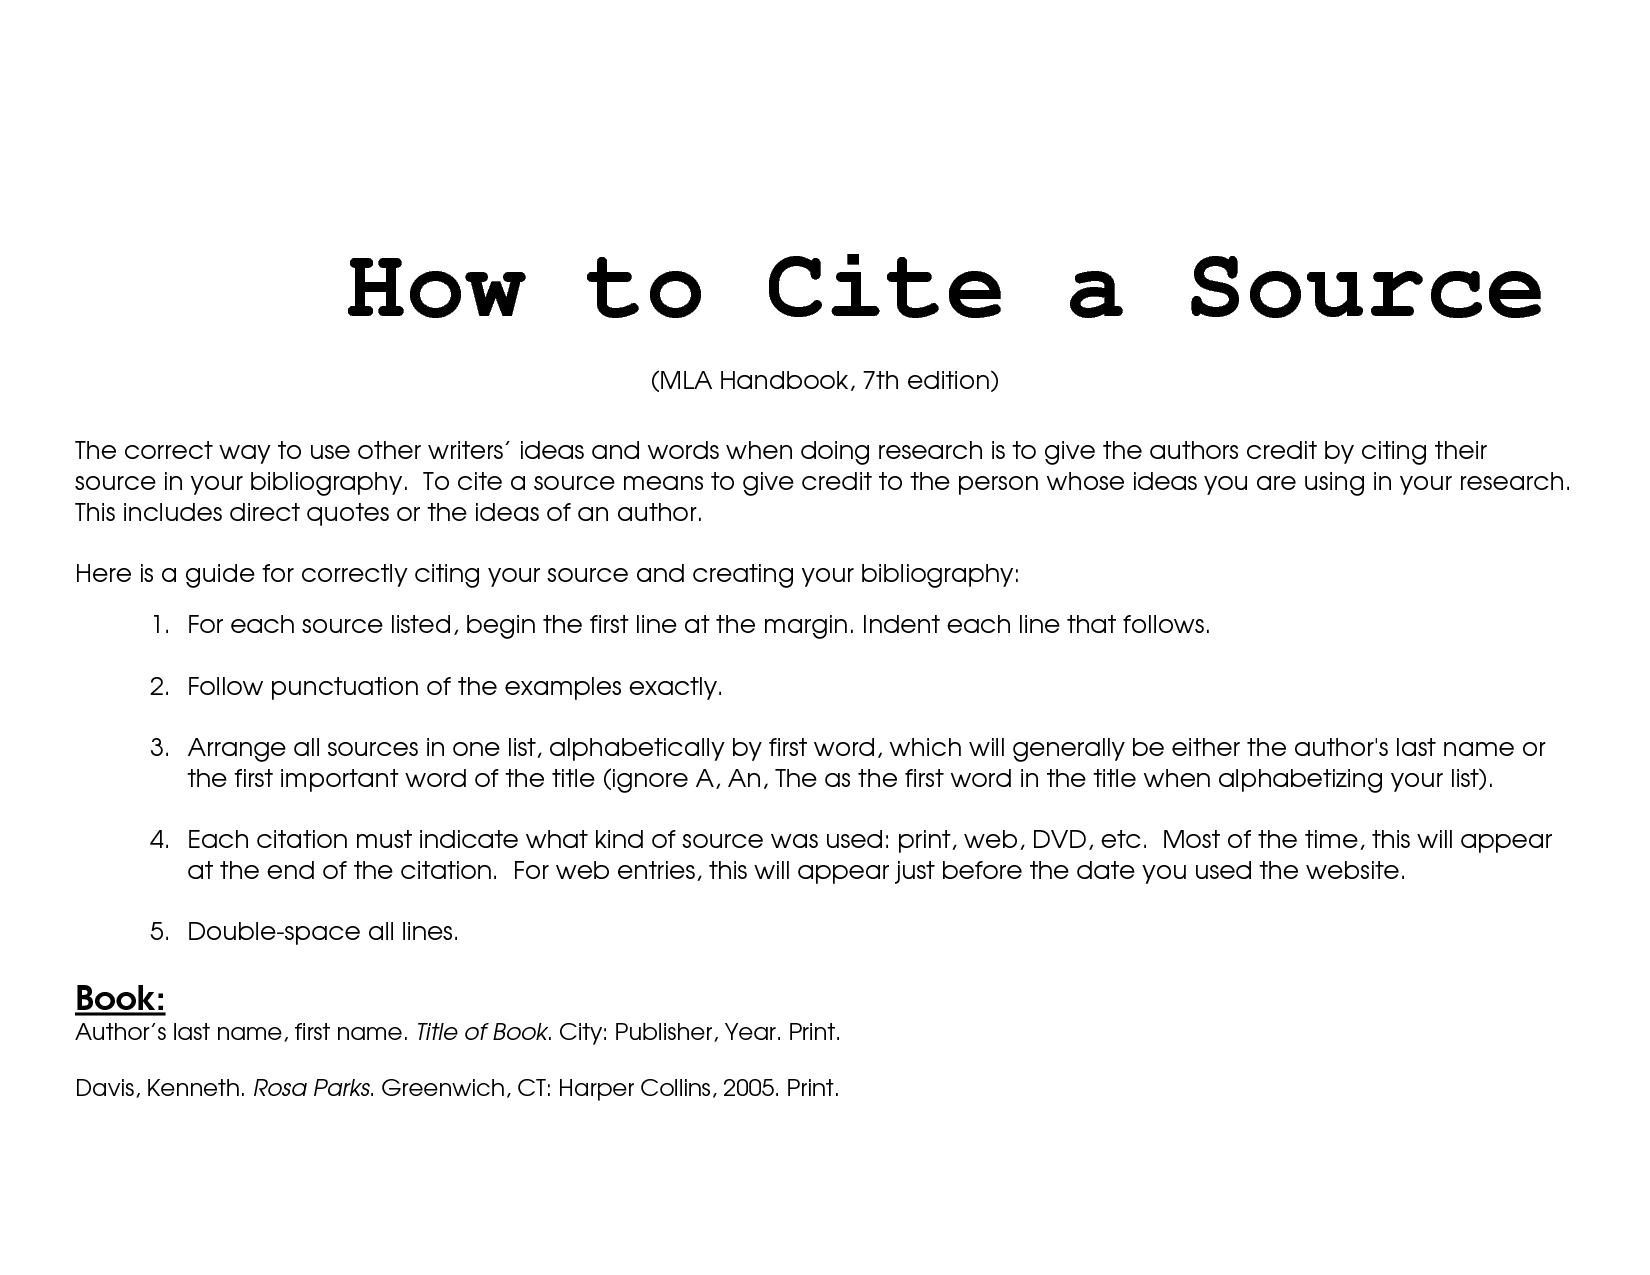 how to cite sources in essay